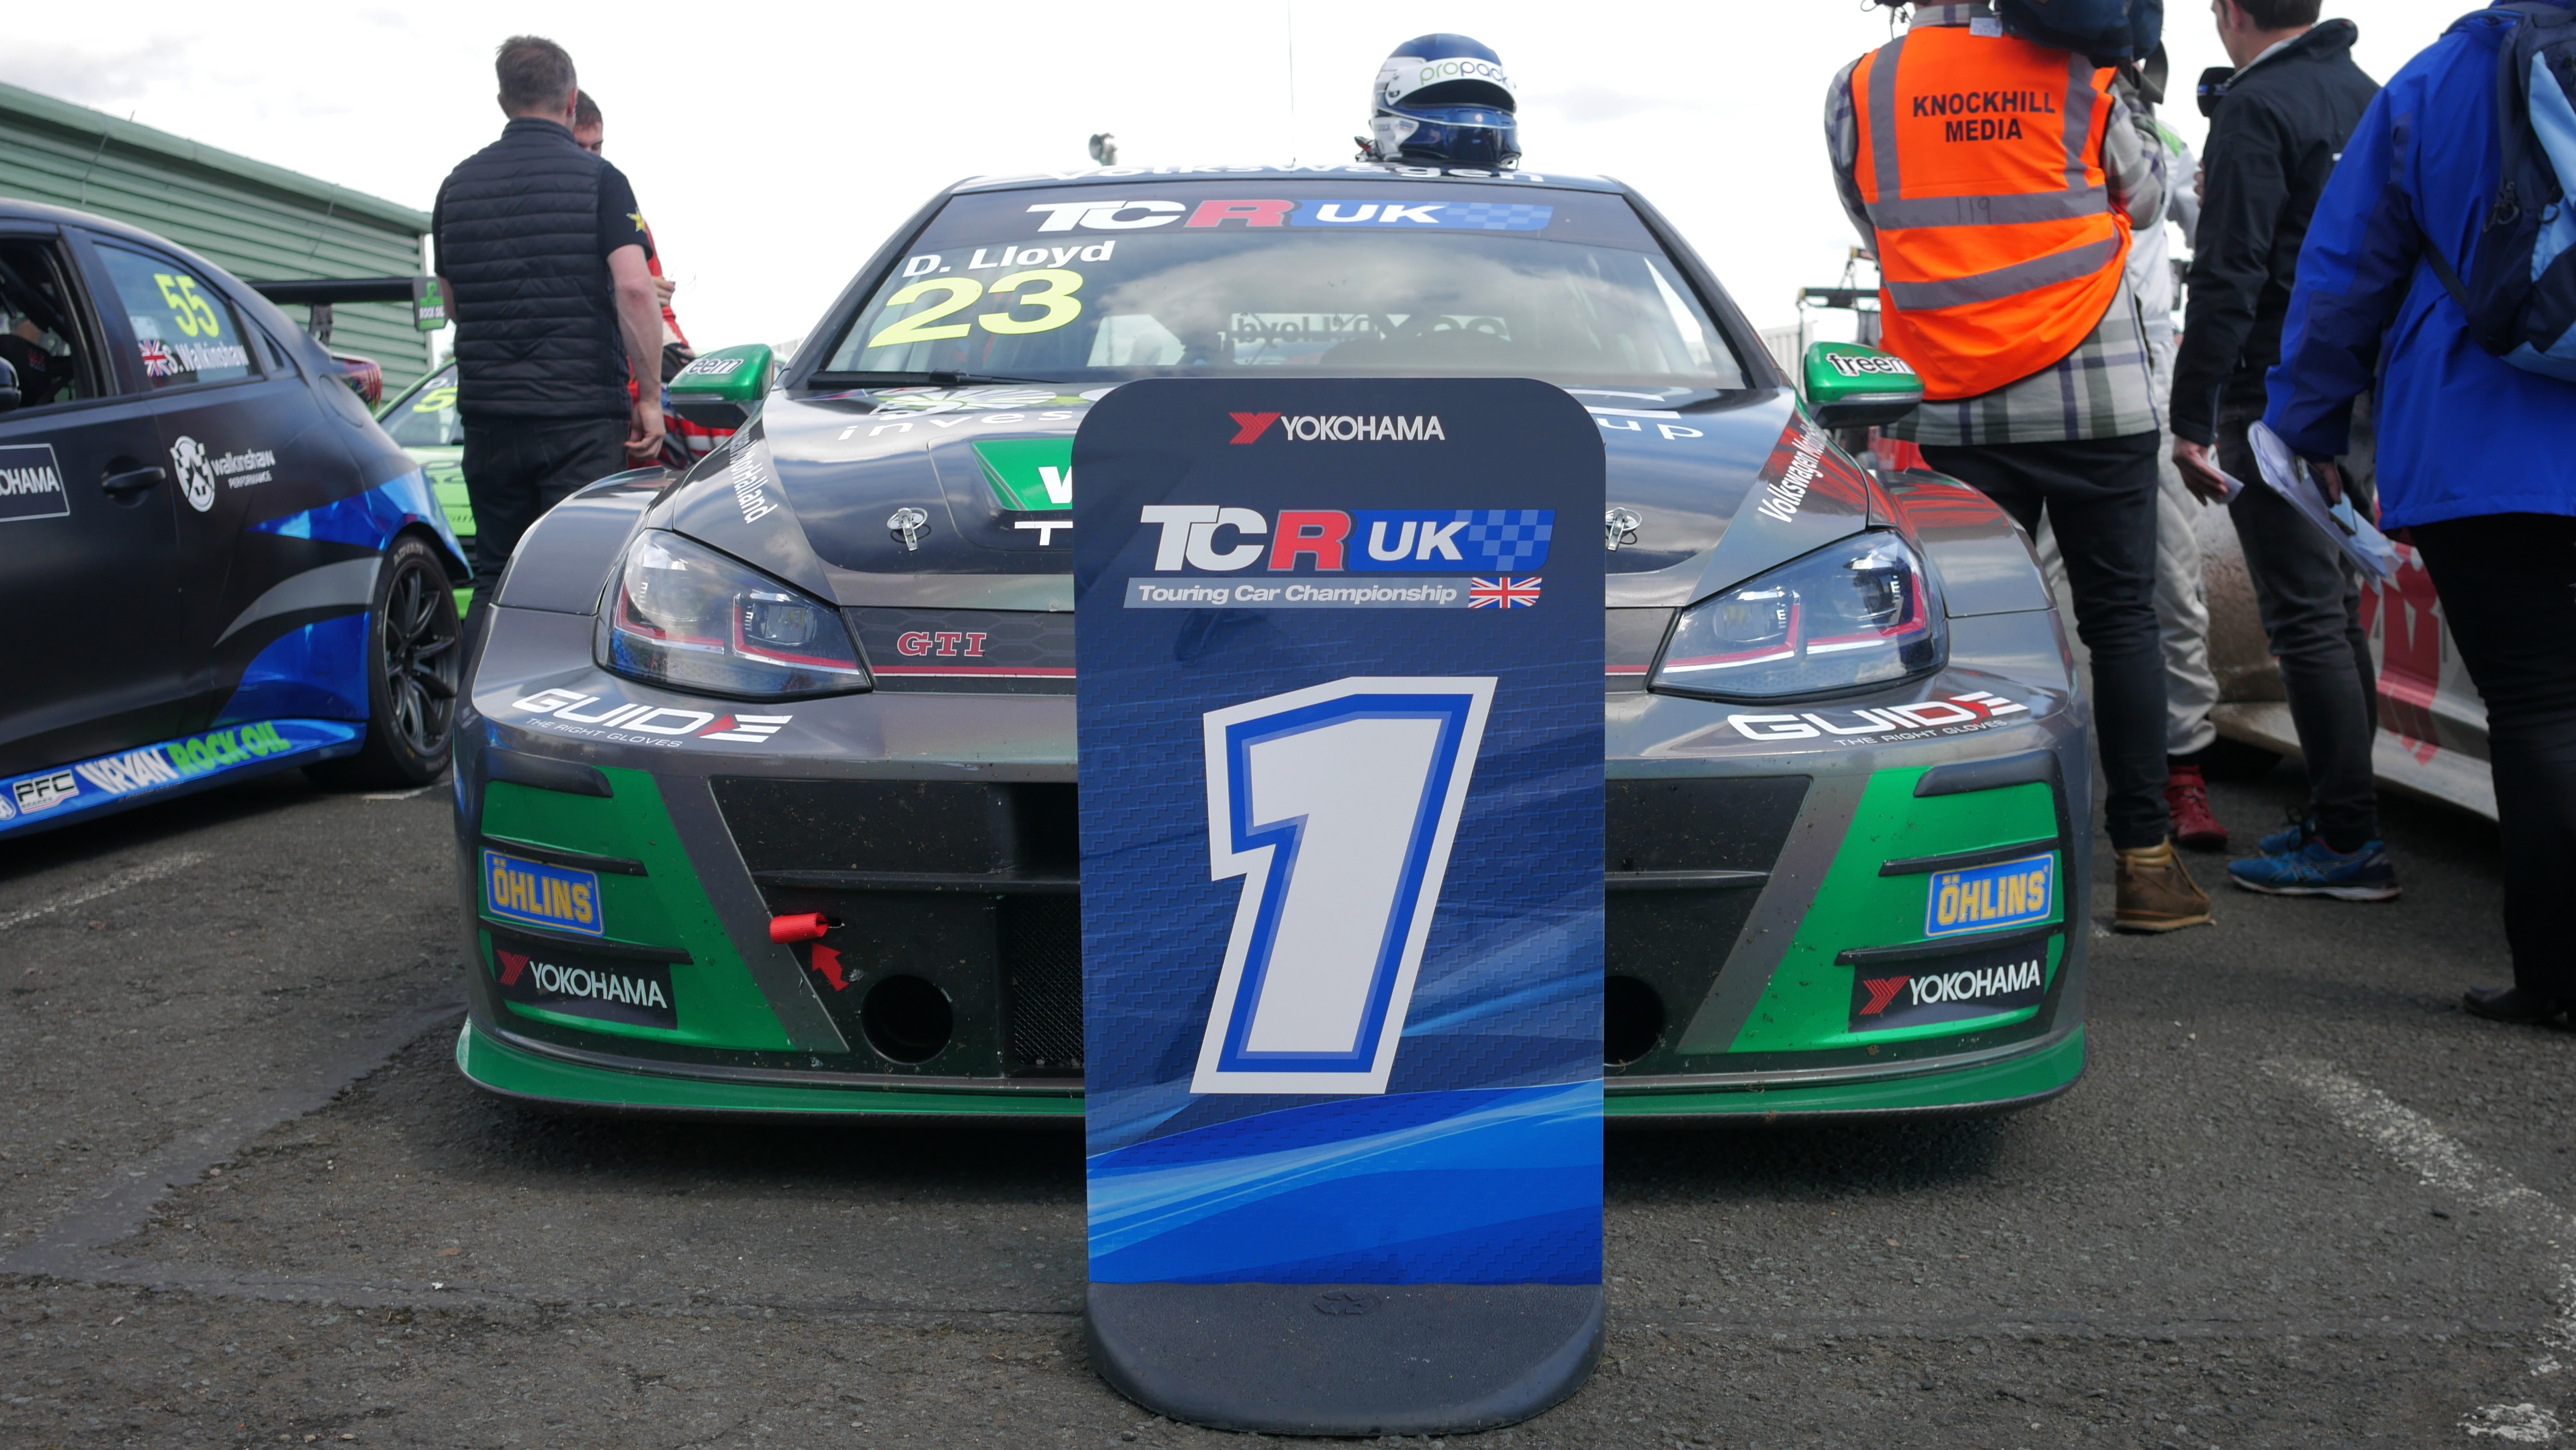 Lloyd does the TCR UK double at Knockhill